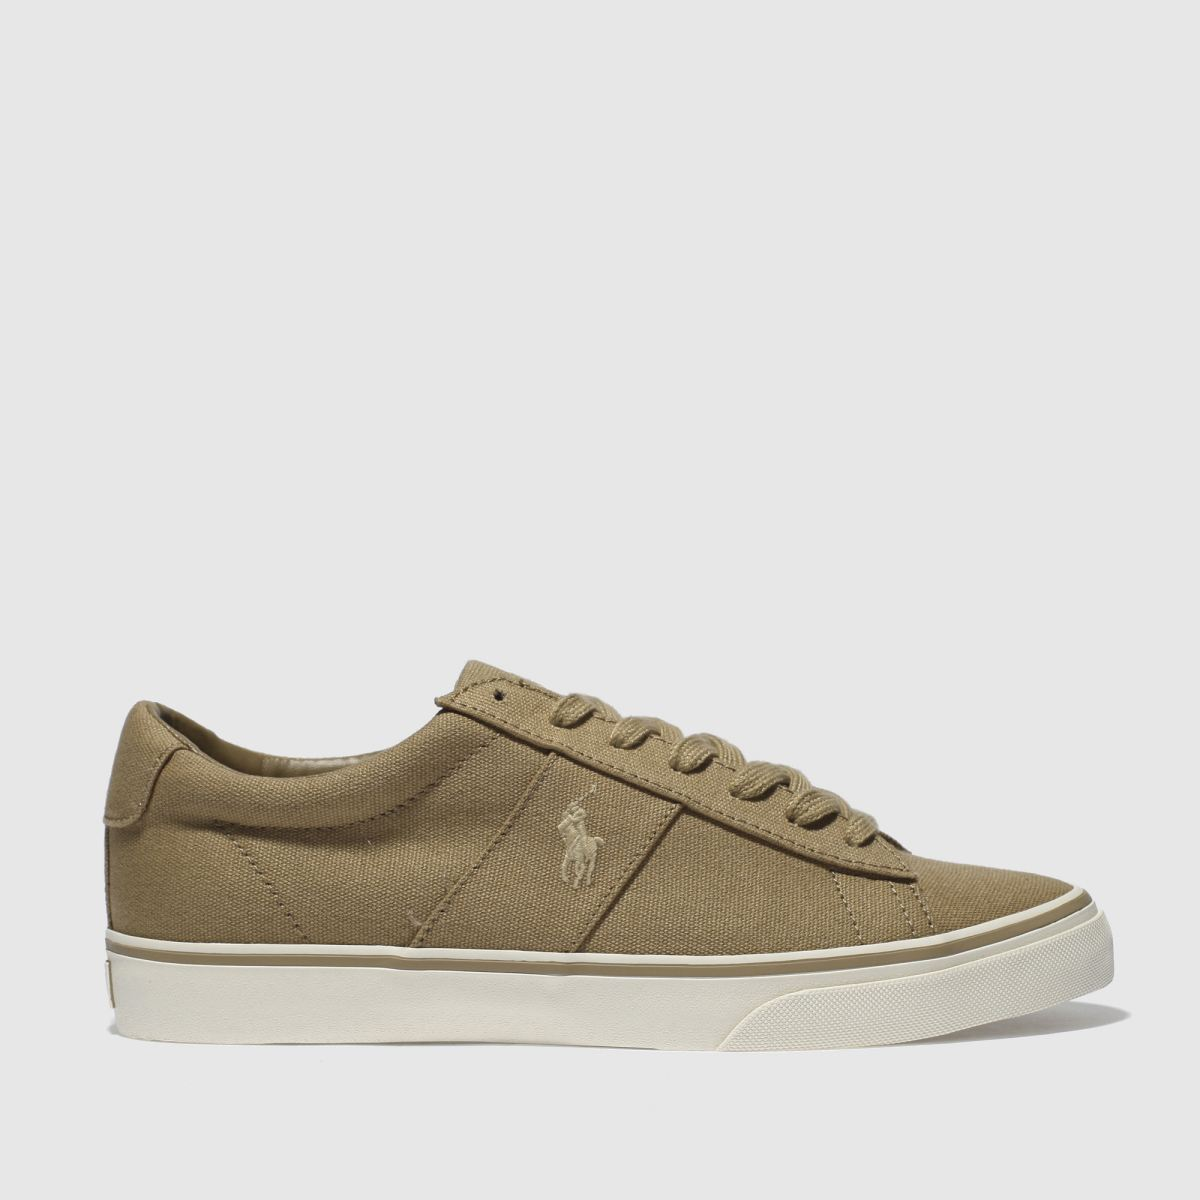 Polo Ralph Lauren Tan Sayer Ne Trainers